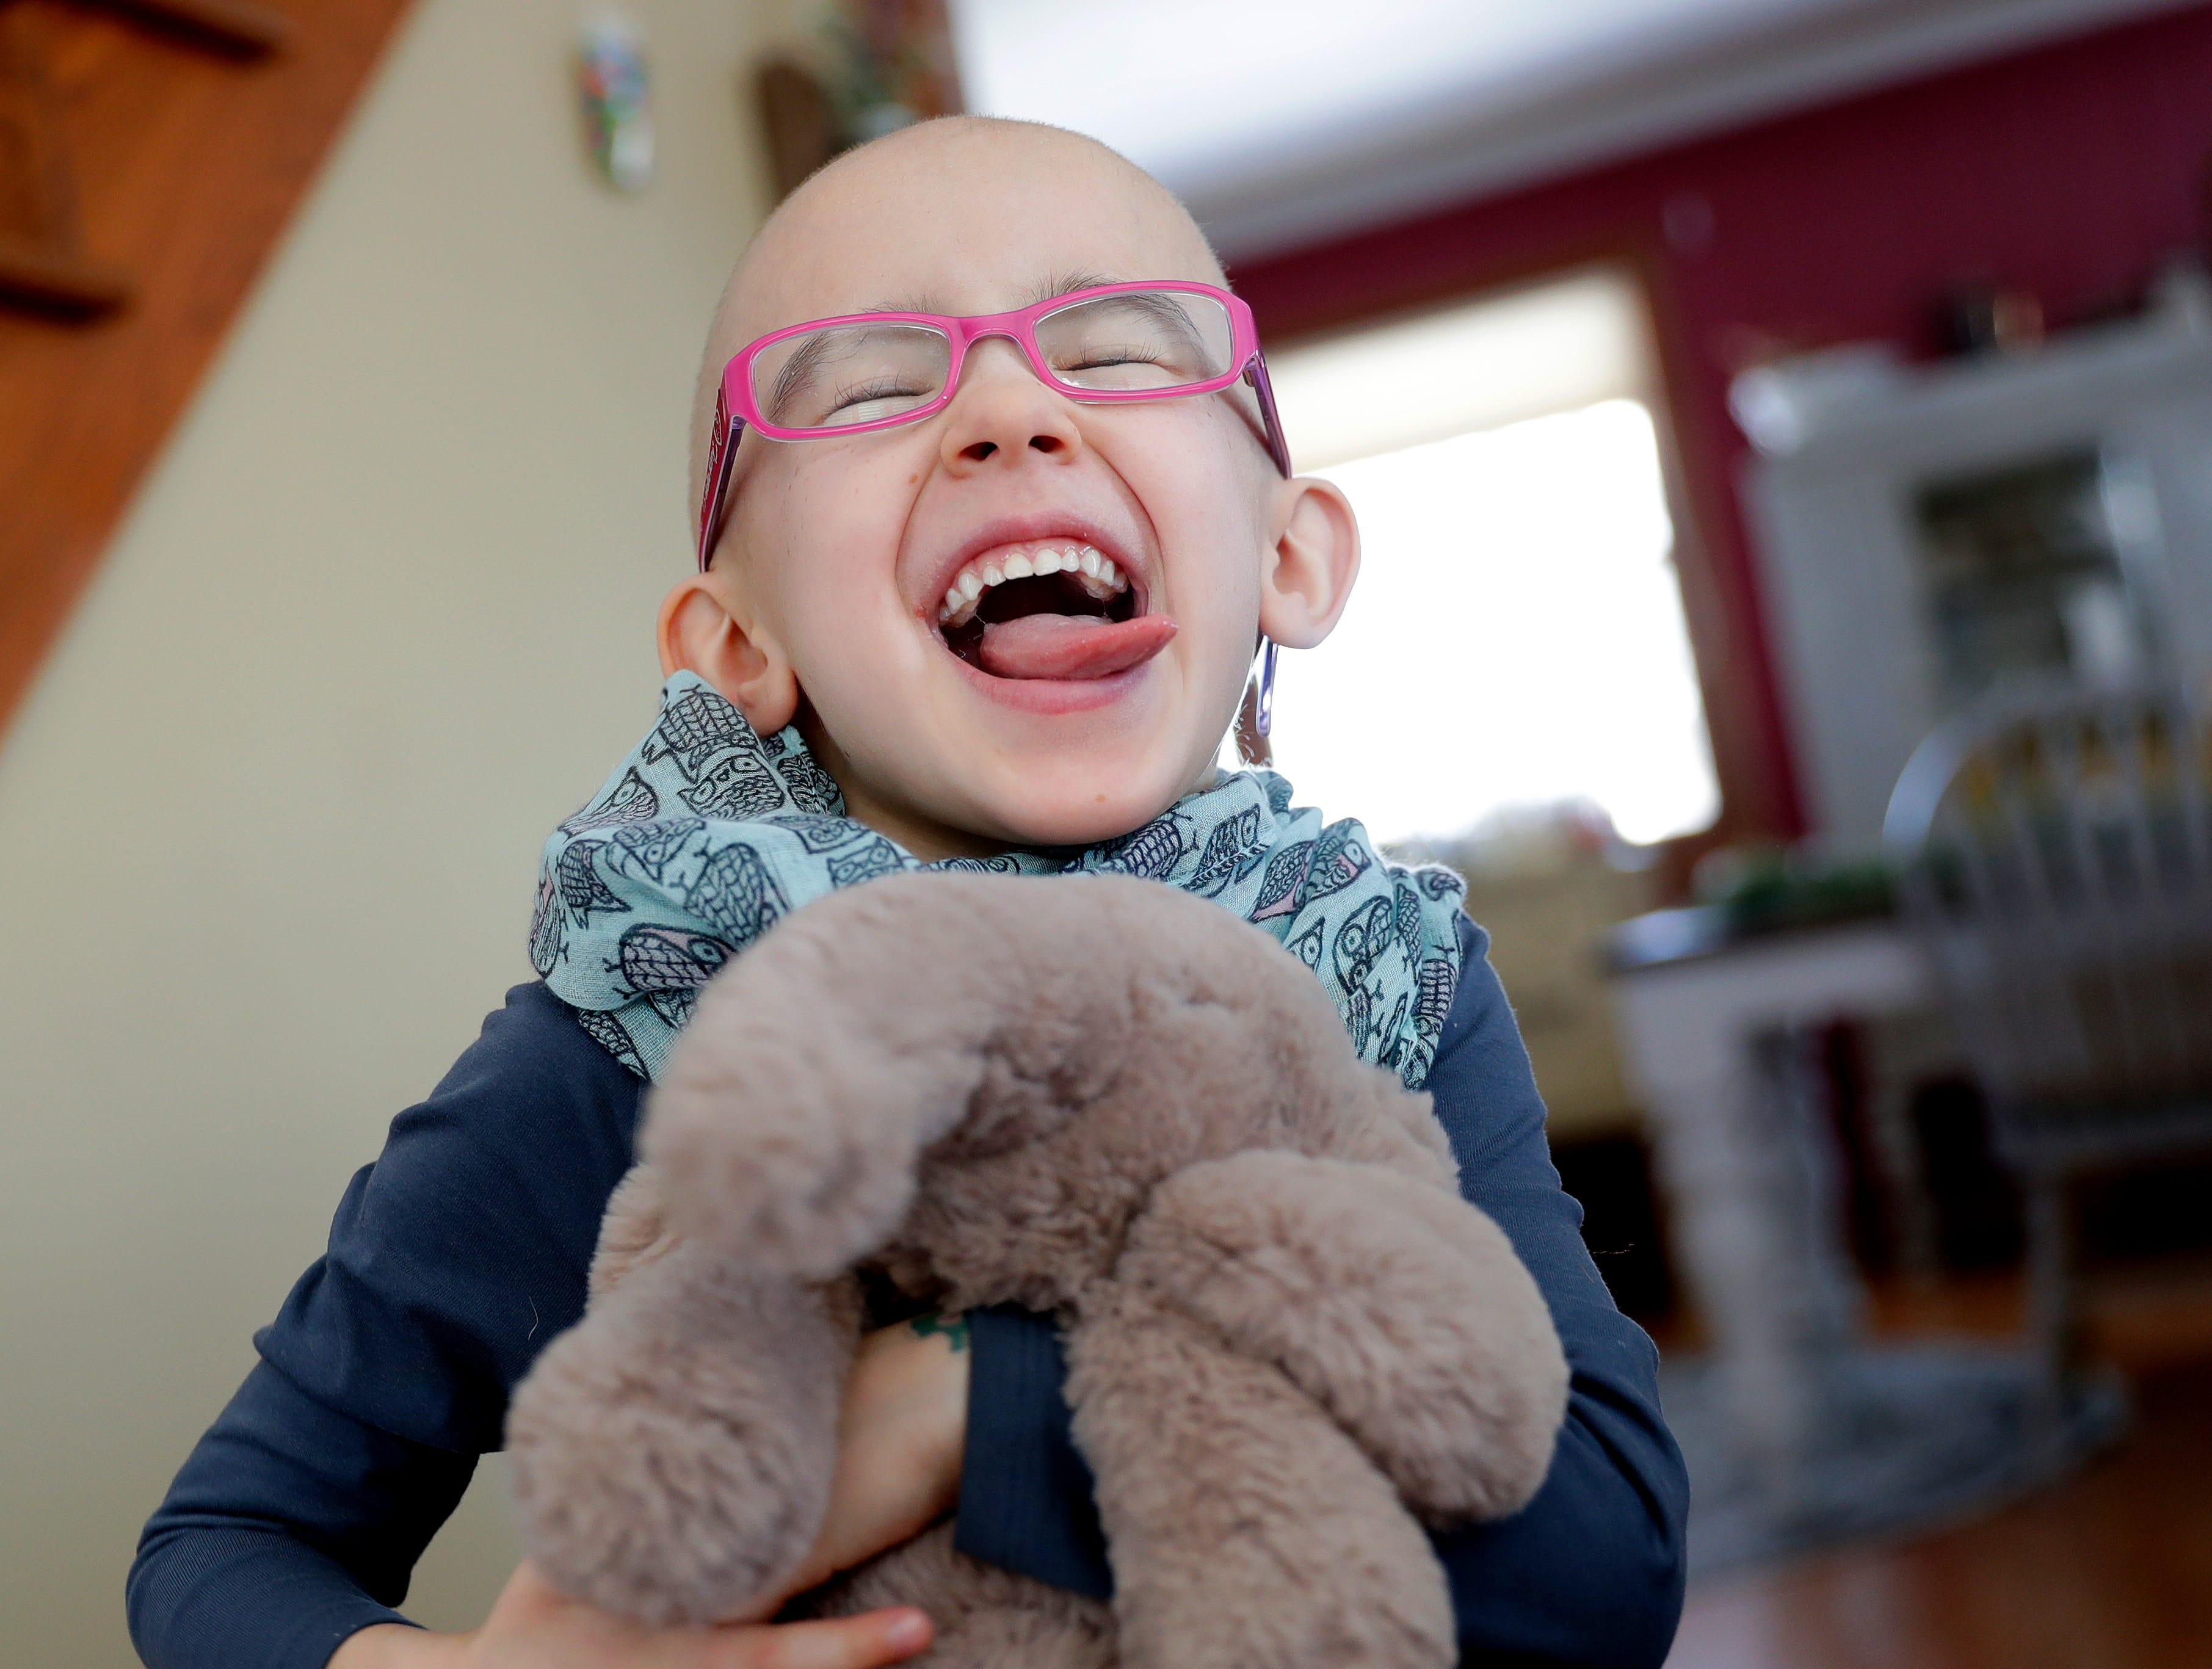 Lily Wertel, 6, makes a silly face while in the living room of her family's home on March 2, 2019, in Wrightstown, Wis. A benefit for Lily, who has cancer, is scheduled for May 19, 2019, at the Riverside Ballroom in Green Bay, Wis.